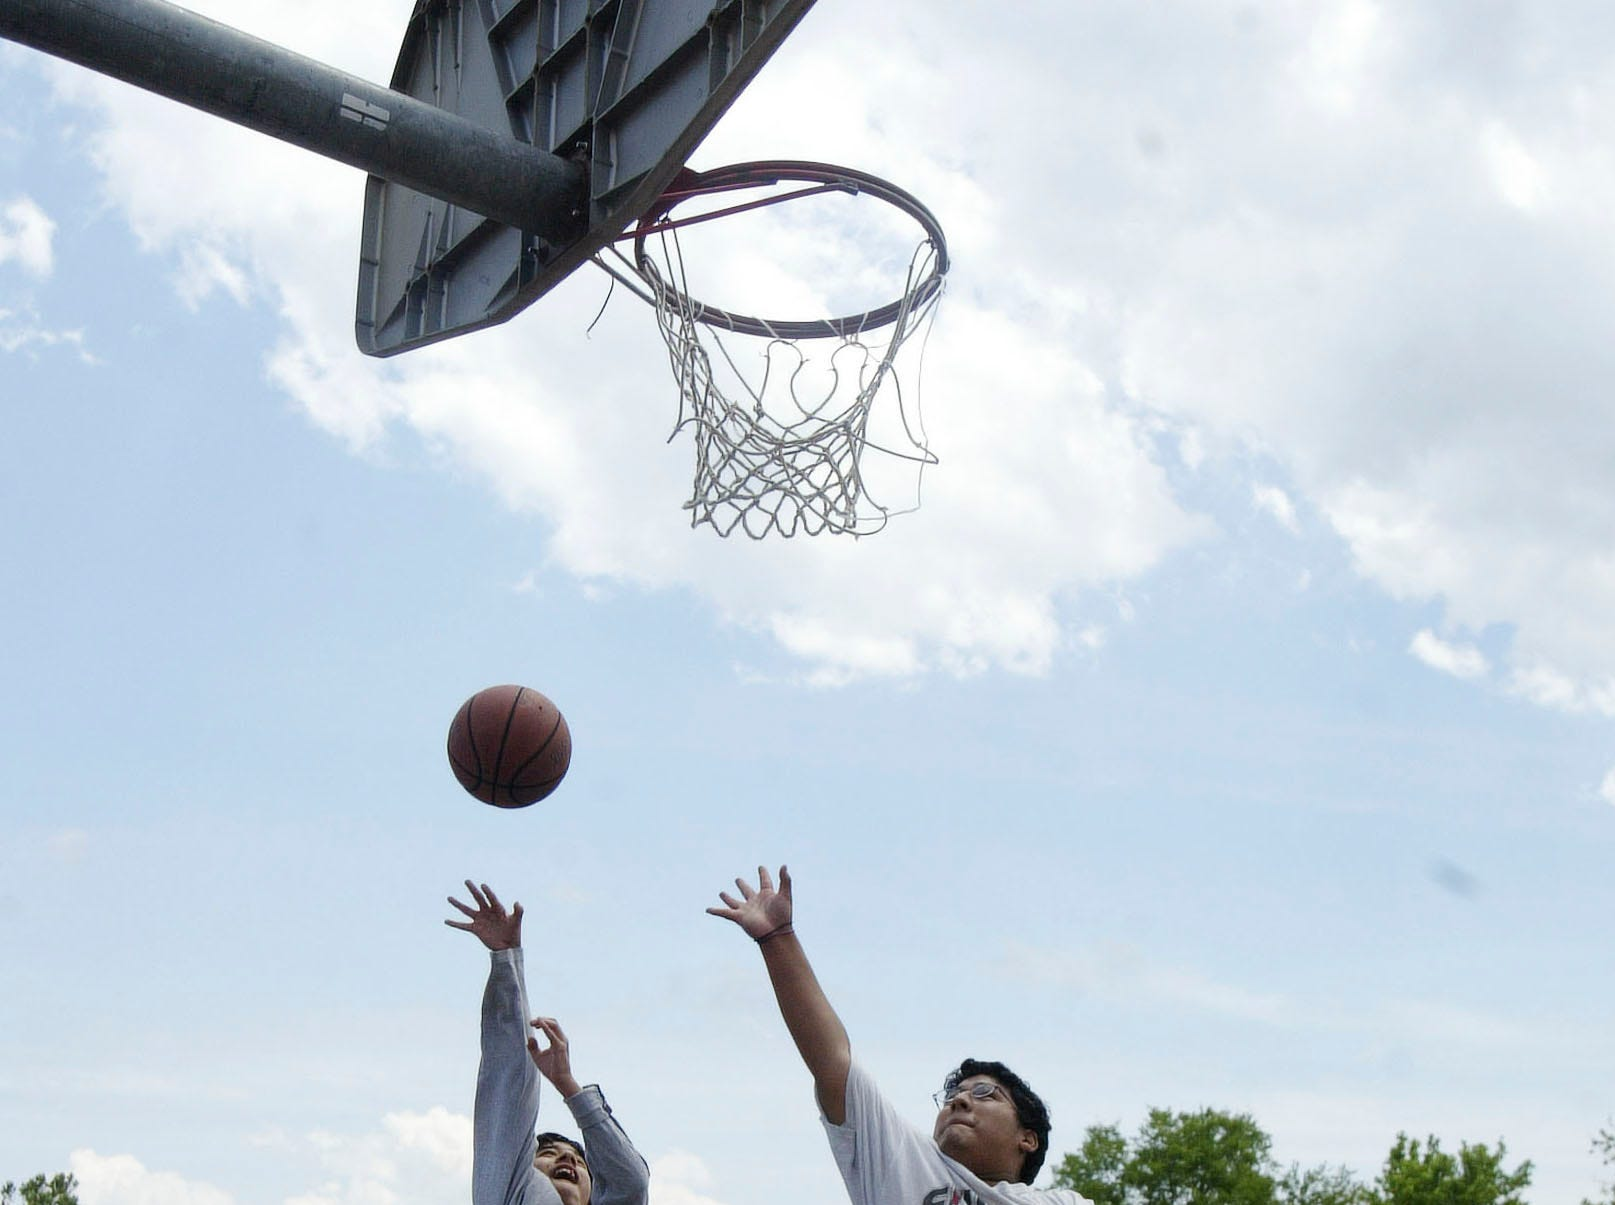 Brian Martinez, 12, shoots over the outstretched arm of his brother David, 16, at the Sam Duff Memorial Park located off Chapman Highway in May 2005.